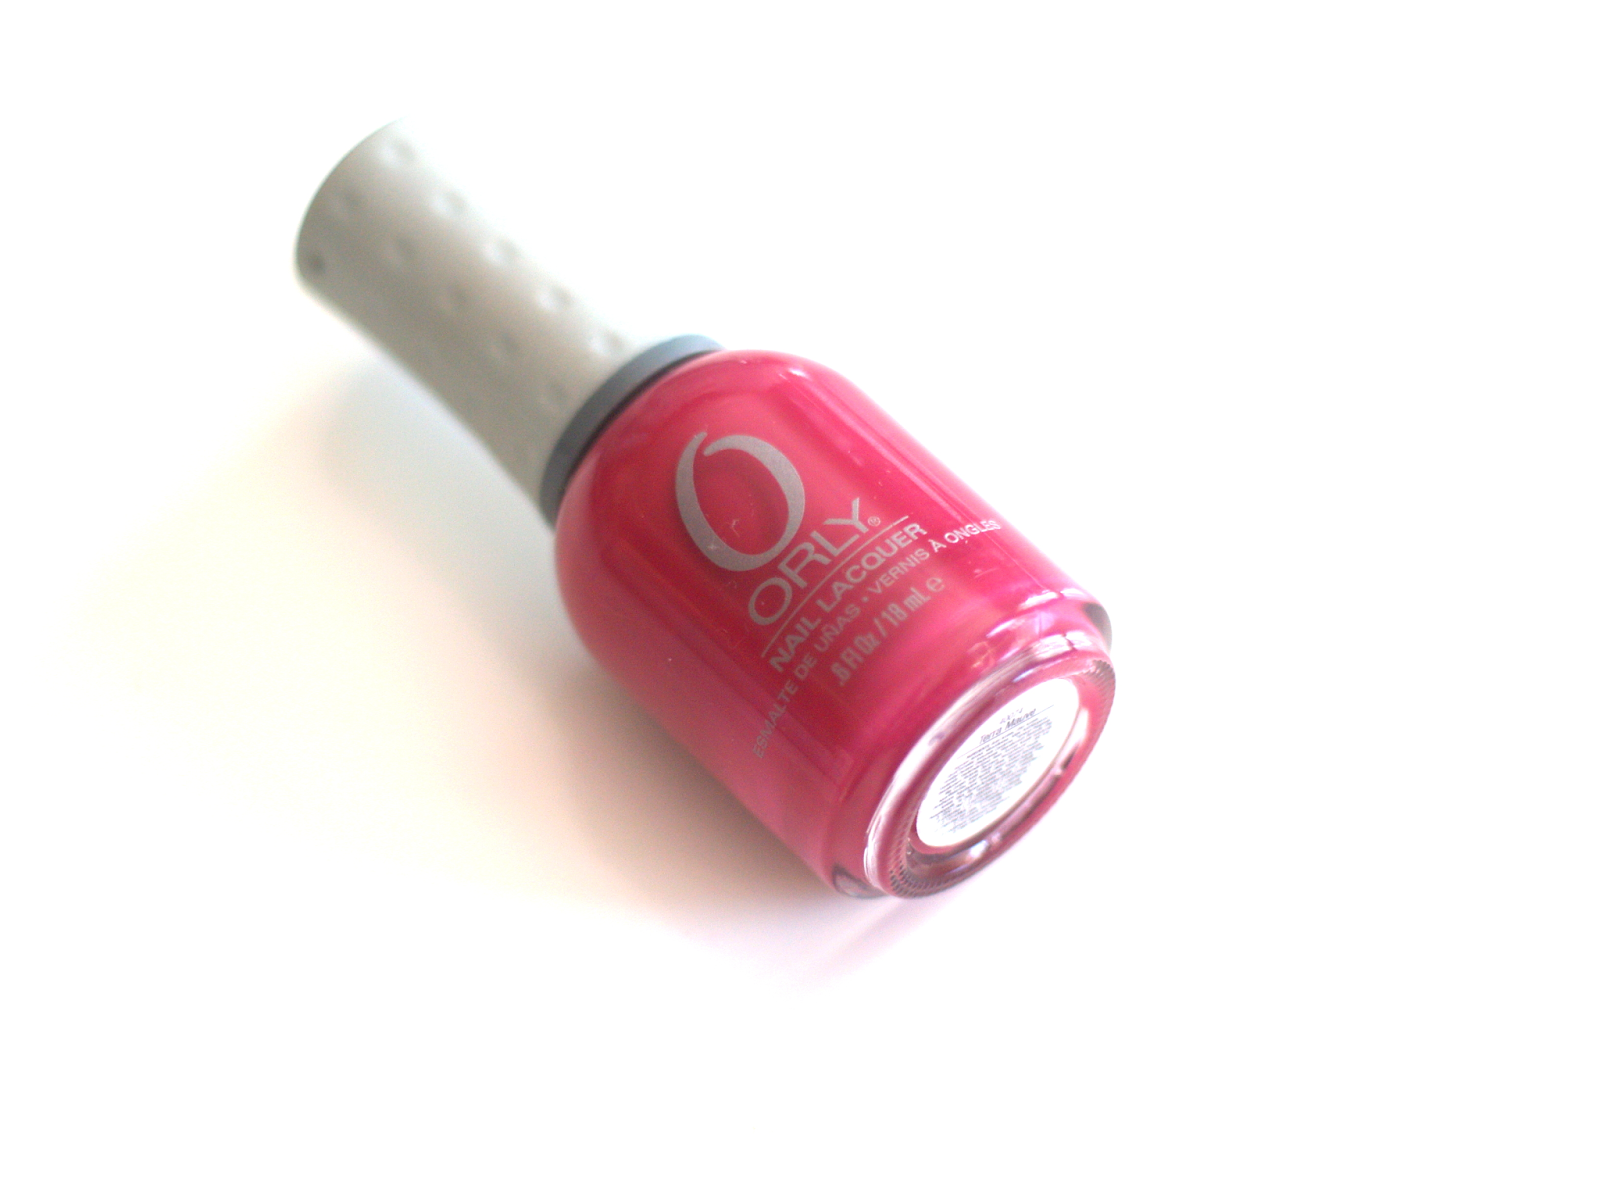 Orly Nail Lacquer in Terra Mauve